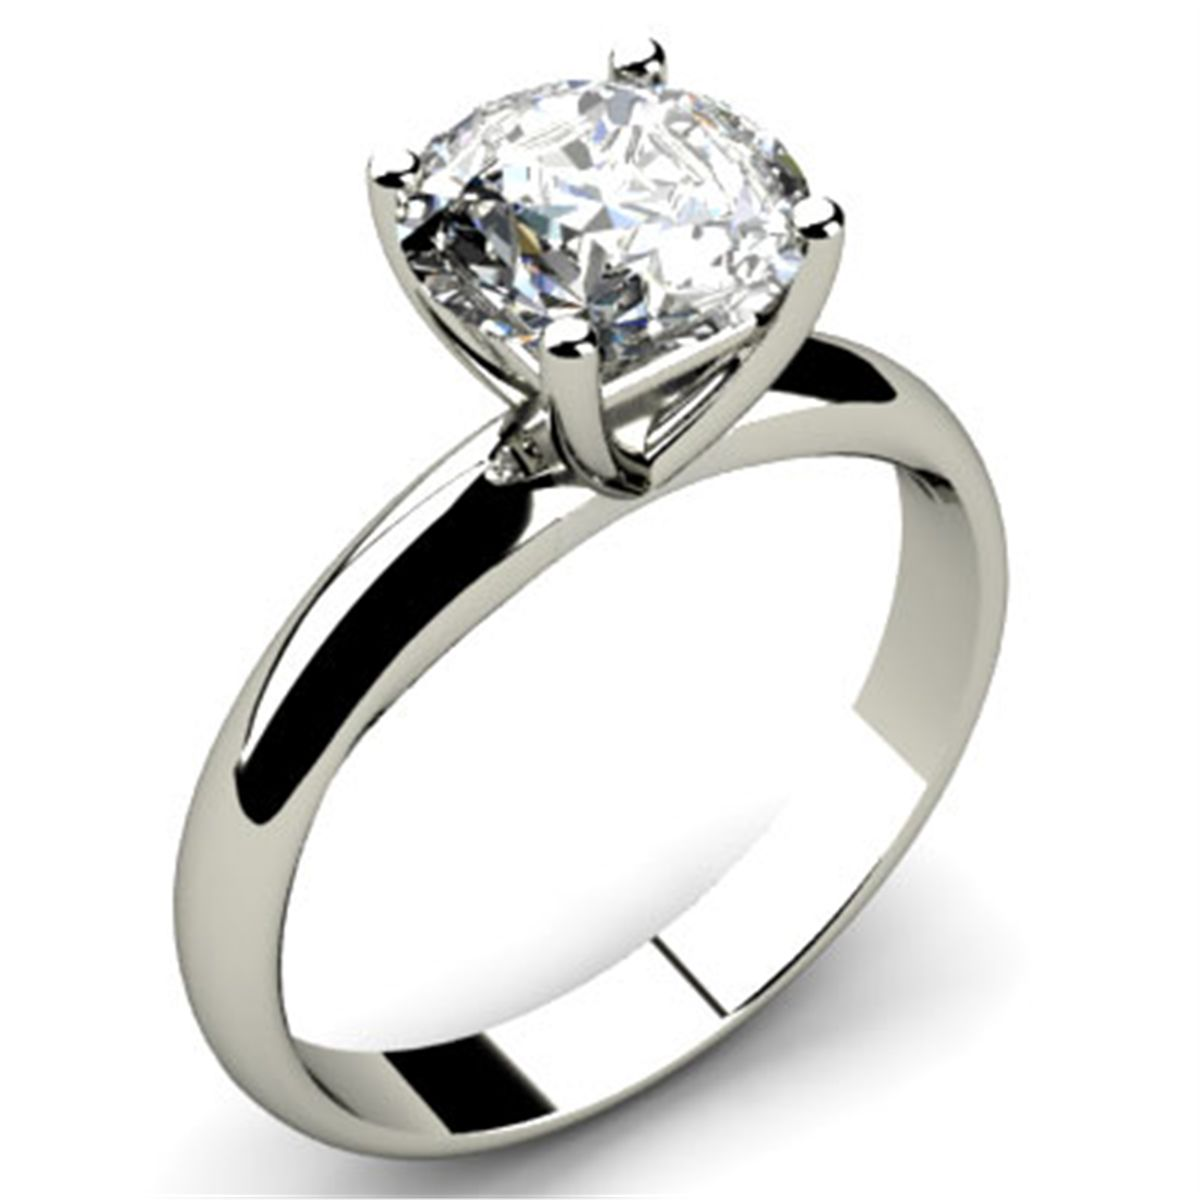 ct round cut diamond solitaire ring g h i. Black Bedroom Furniture Sets. Home Design Ideas